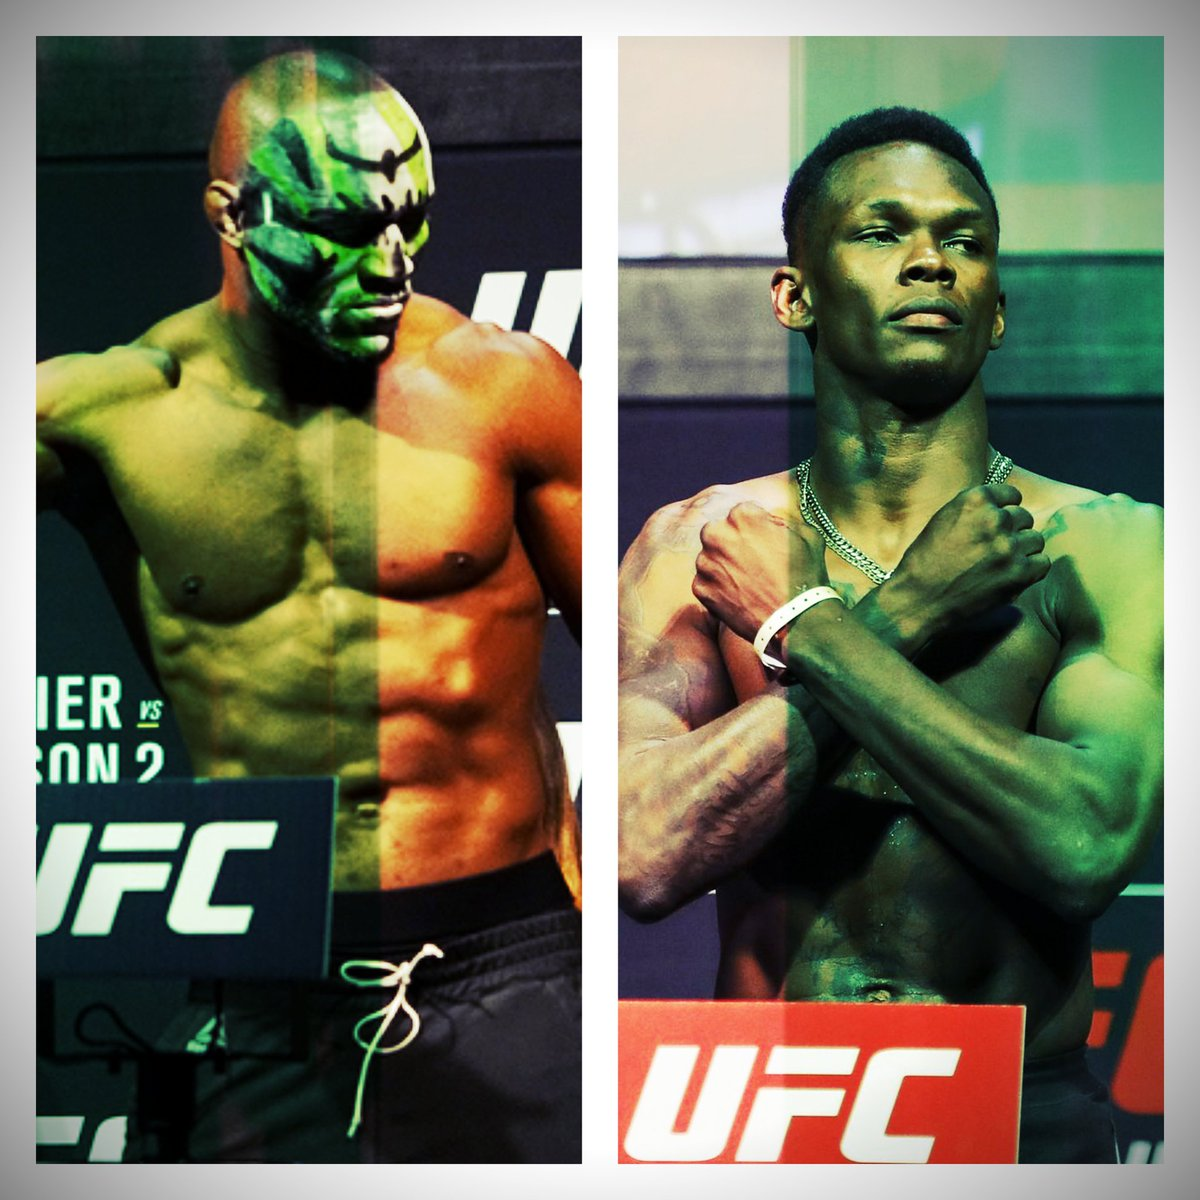 Fun fact: The UFC WILL have 2 New Nigerian Champion's by the end of this year.   #StrapSeason #AndNew 🏆🏆